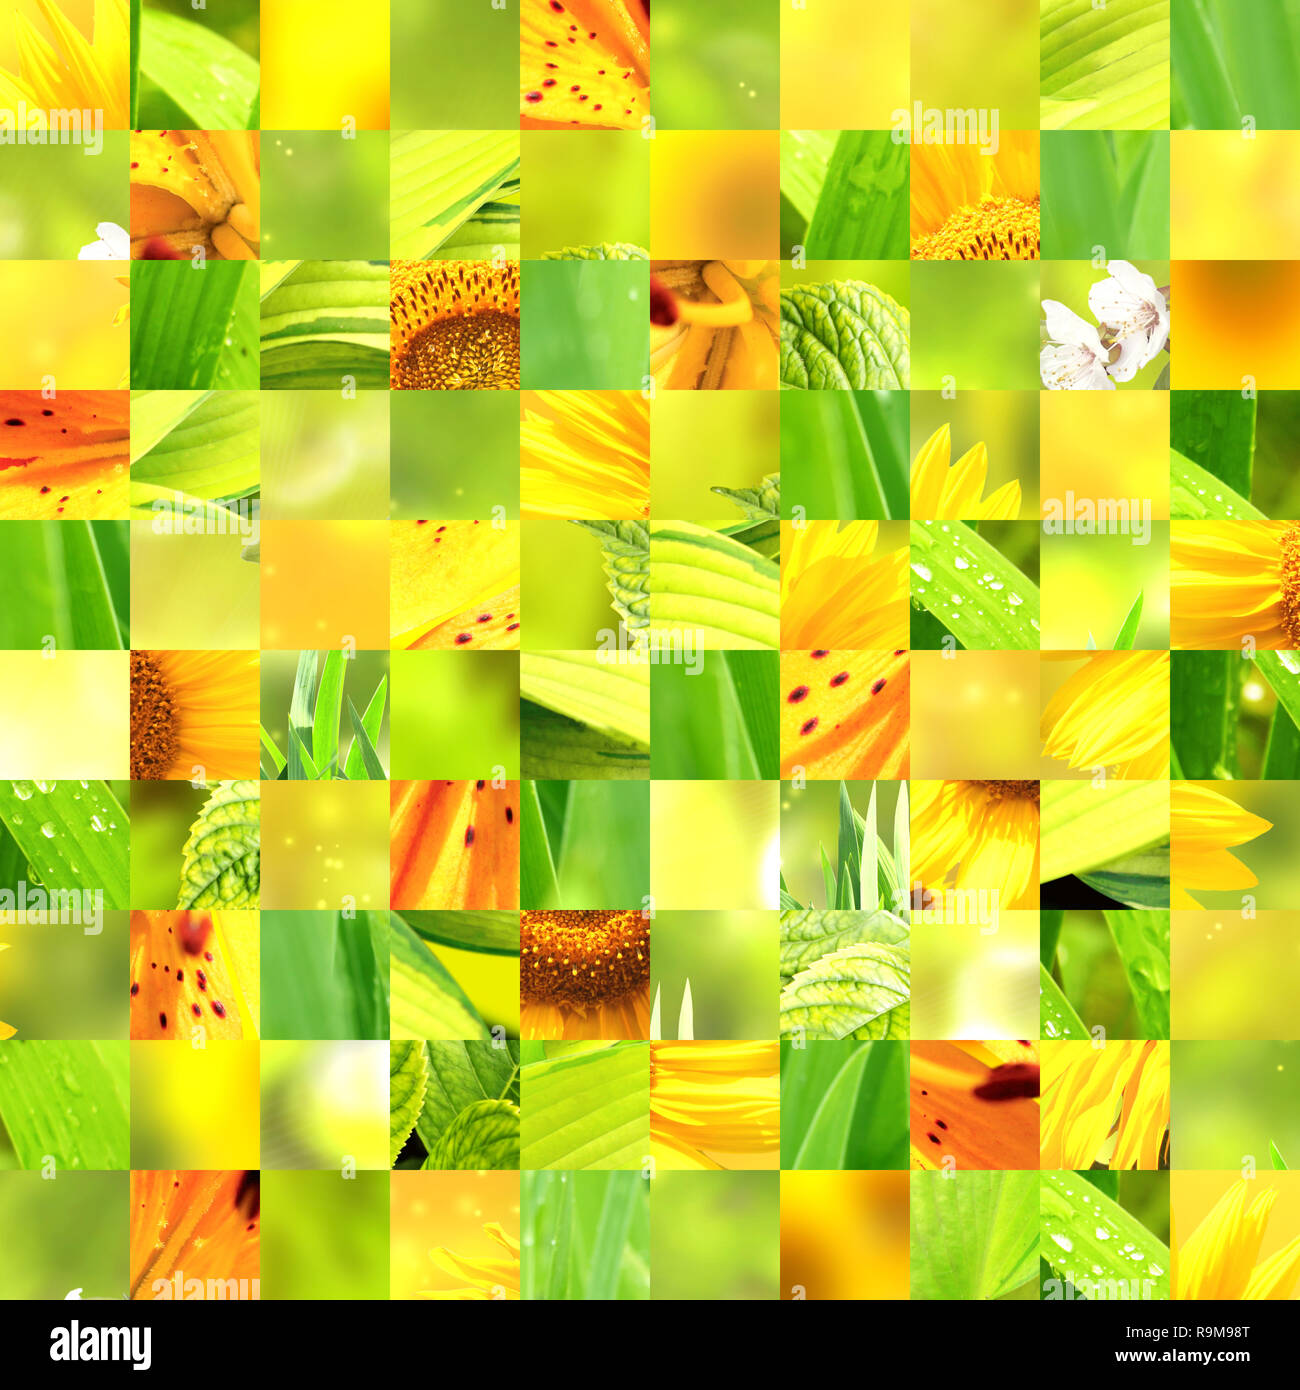 Seamless Background With Sunflower Patterns Of Green Yellow Orange